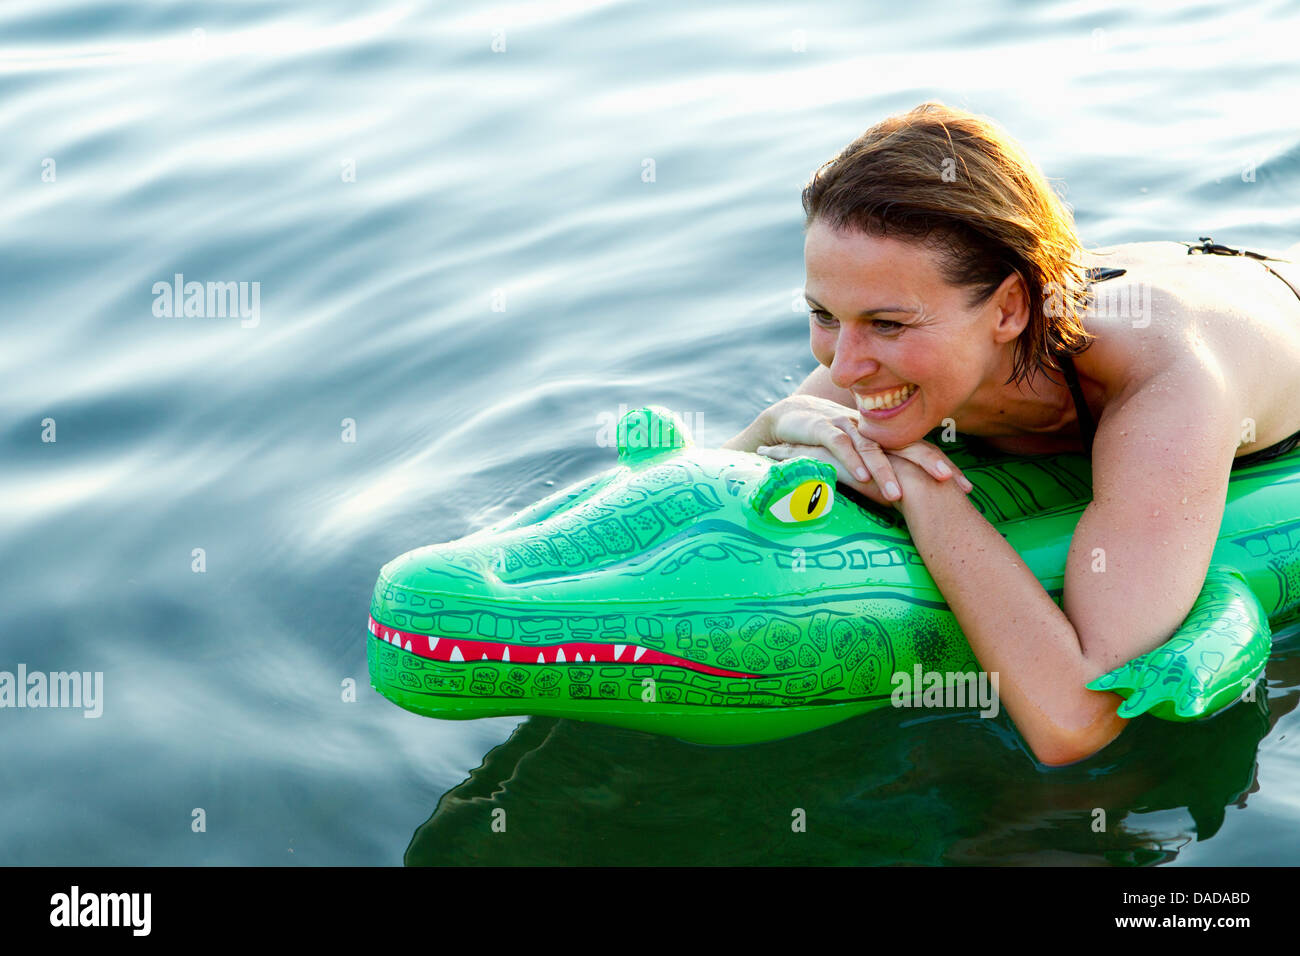 Woman in sea with inflatable crocodile - Stock Image